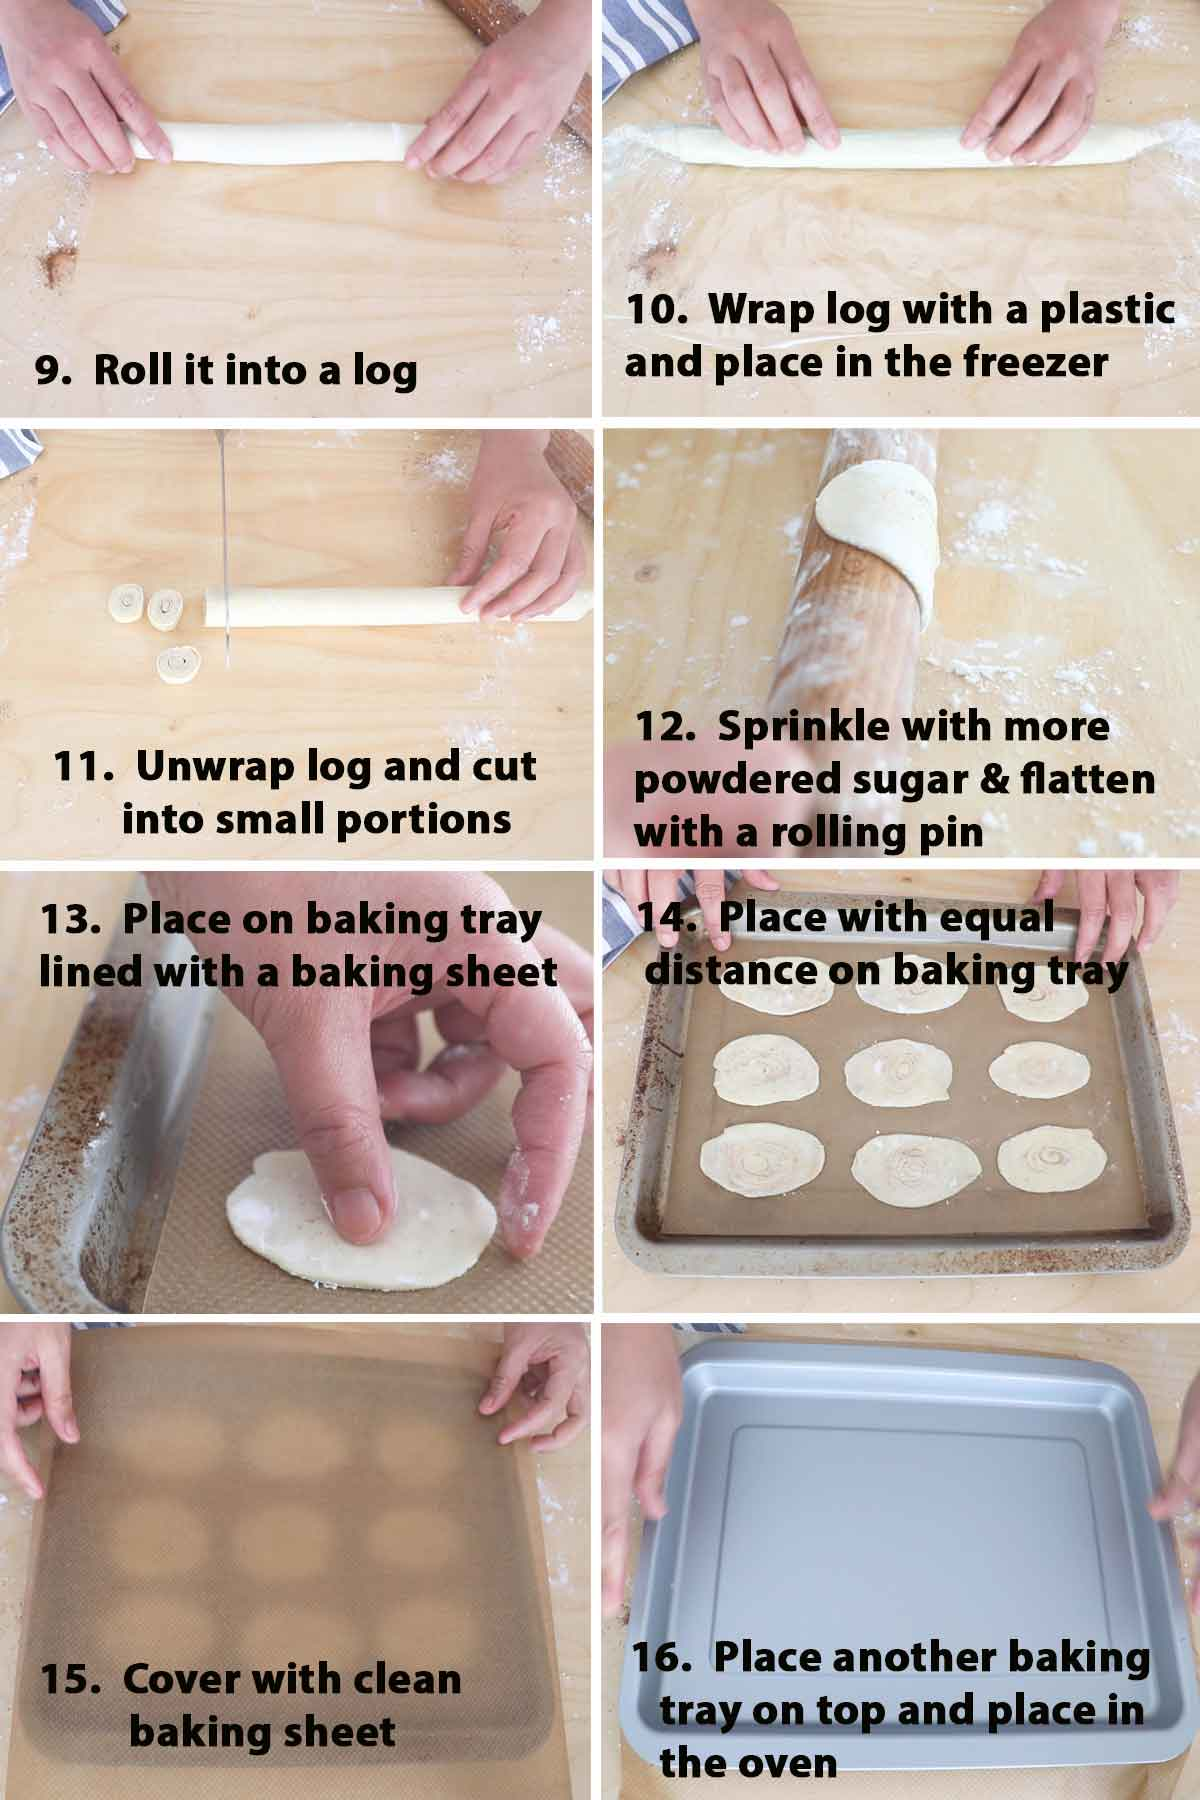 Second part of a collage of images showing the step by step process on how to make puff pastry cookies.